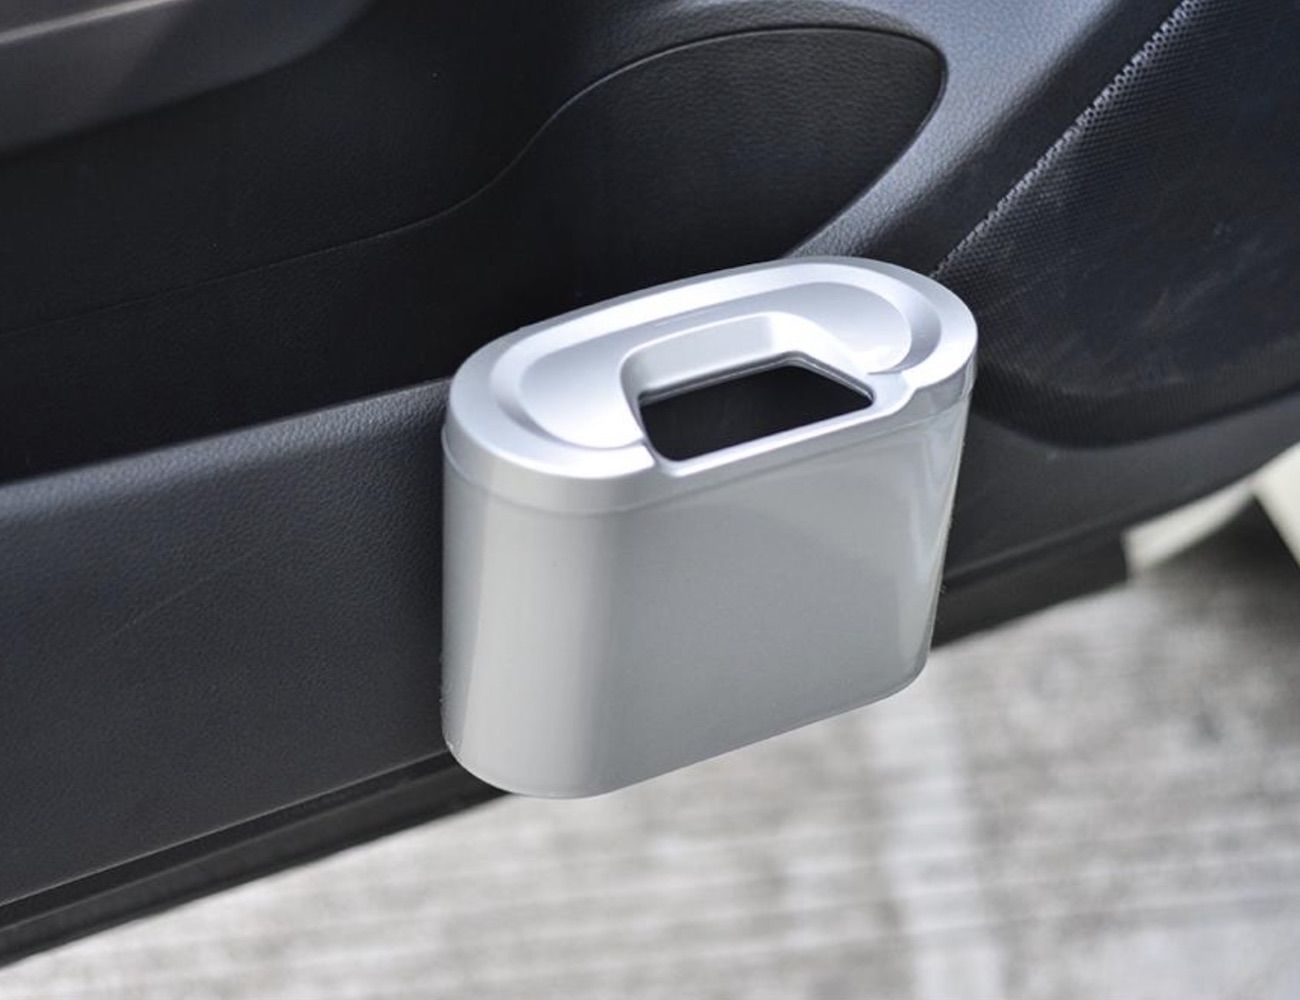 Vehicle Trash Can Universal Car Garbage Bin keeps all your trash in one place